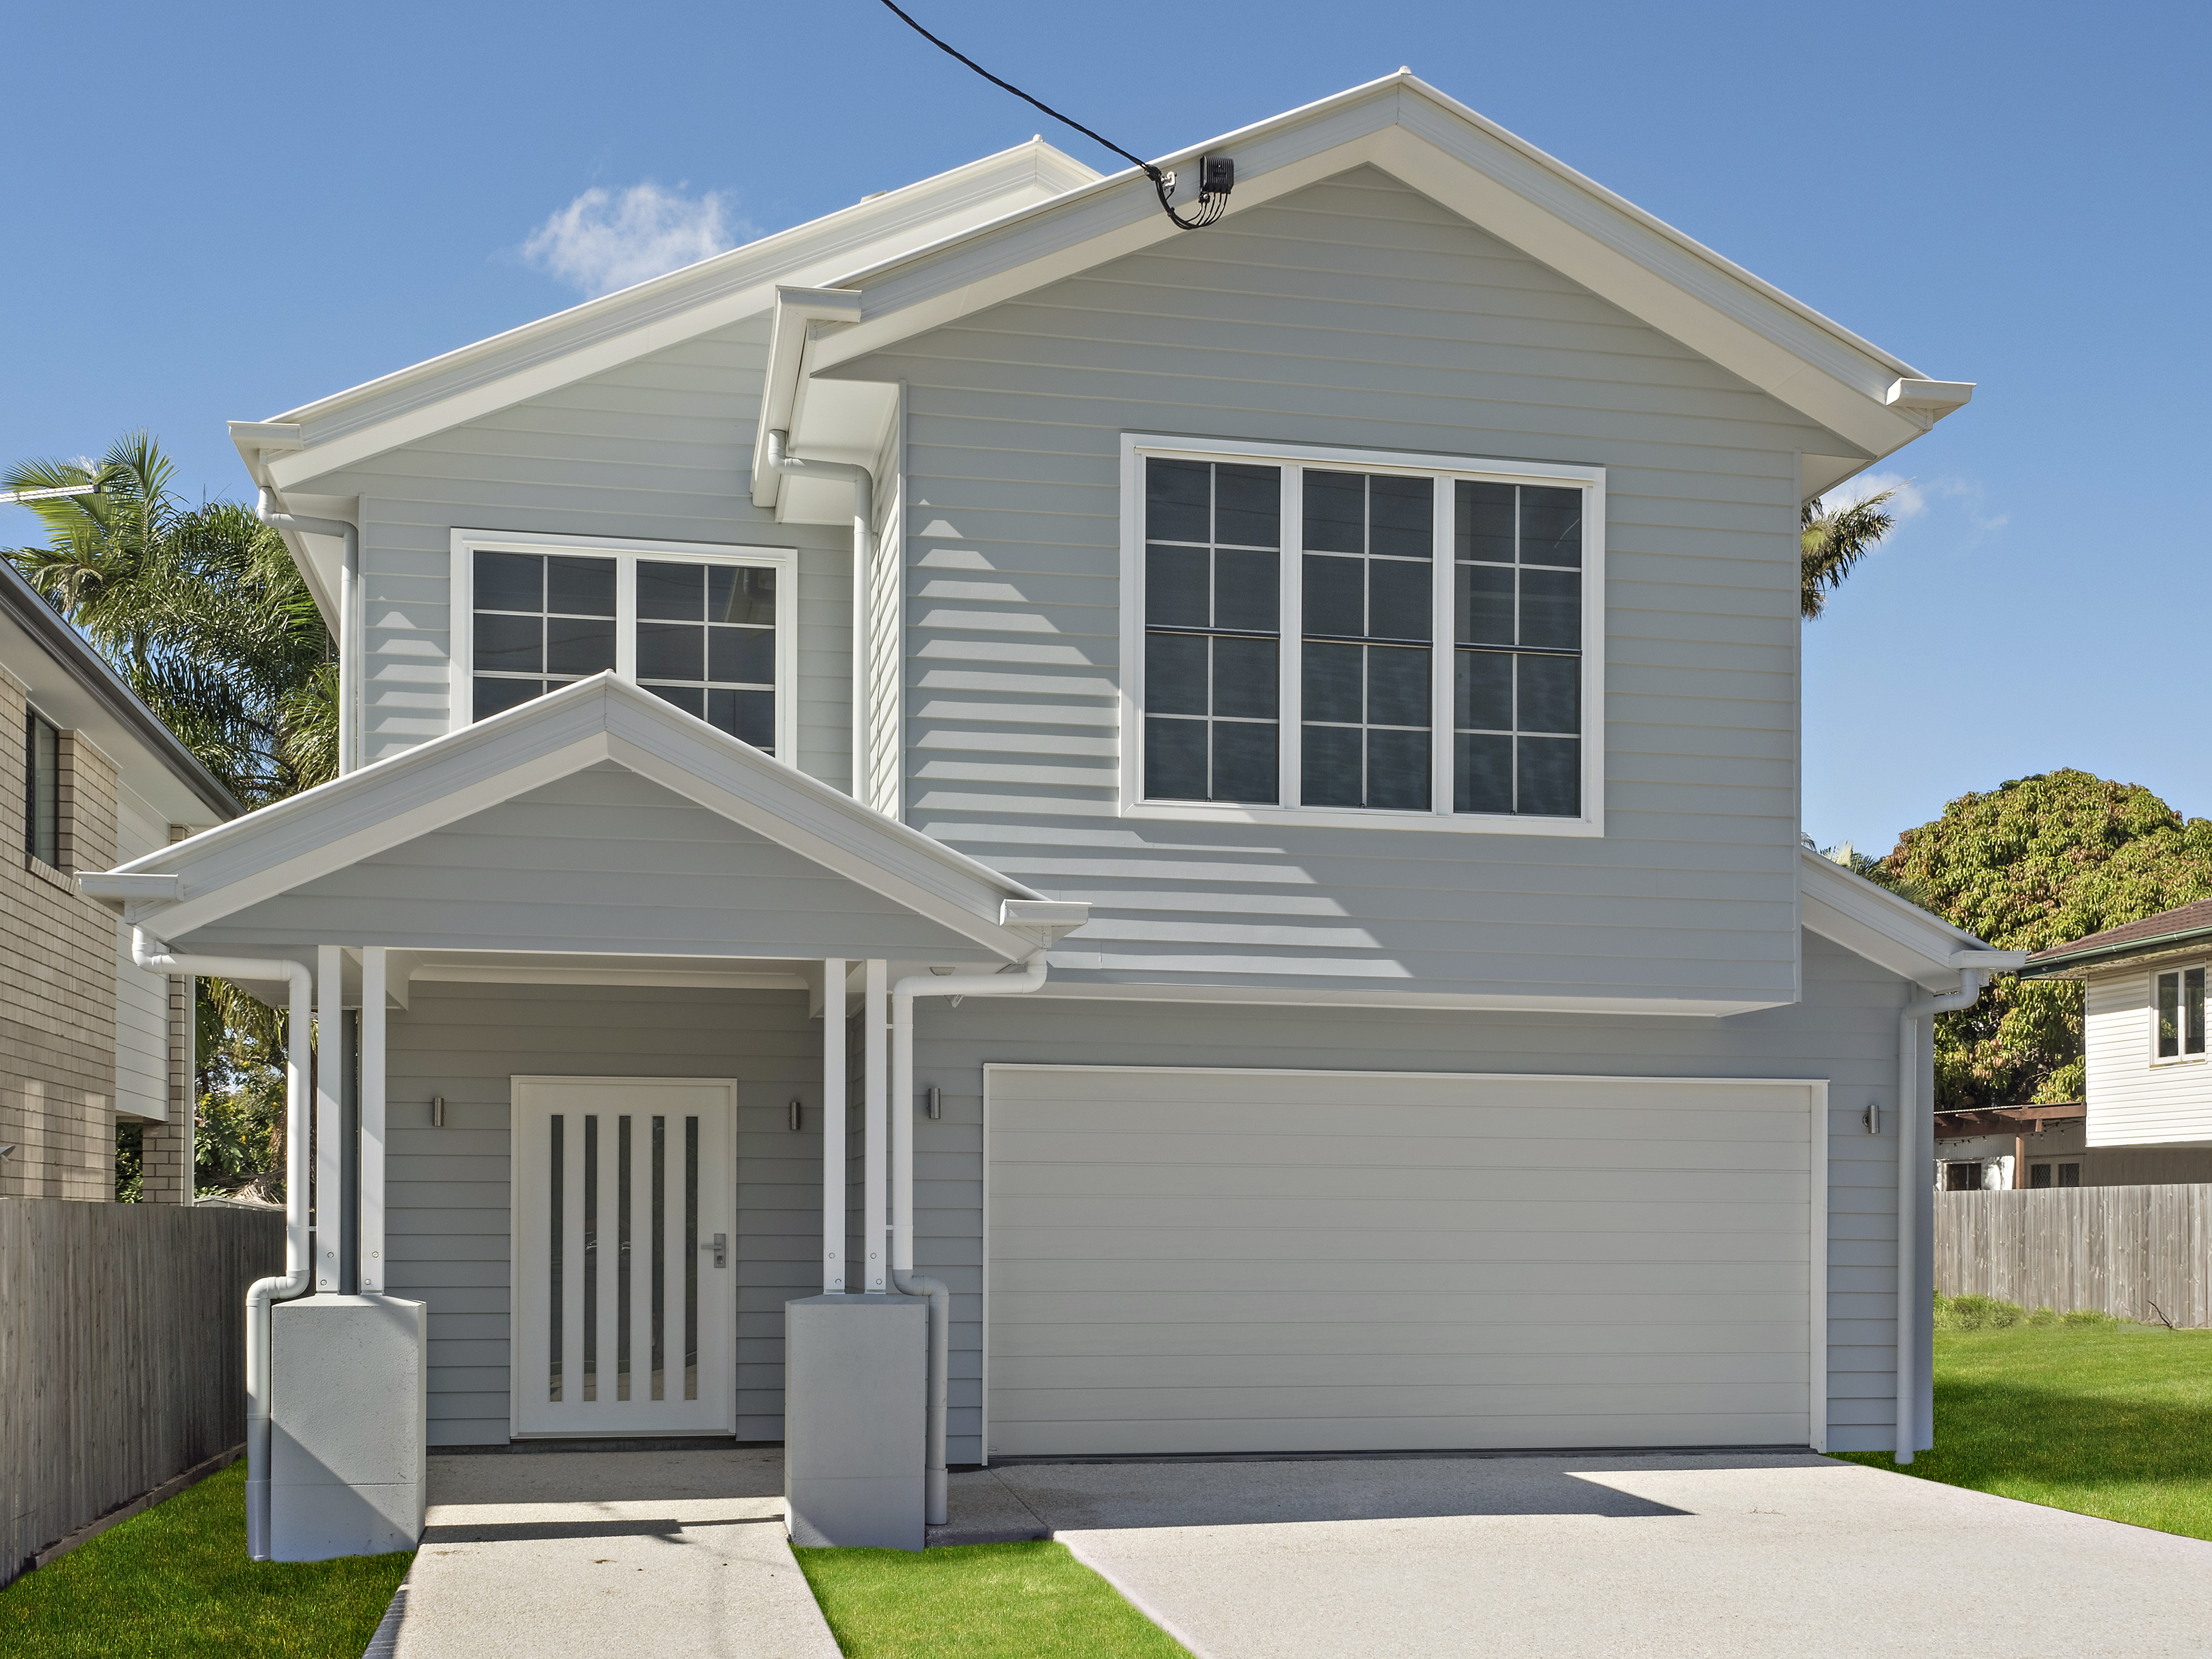 Take advantage of the HomeBuilder grant with our 30 day Start Build Guarantee